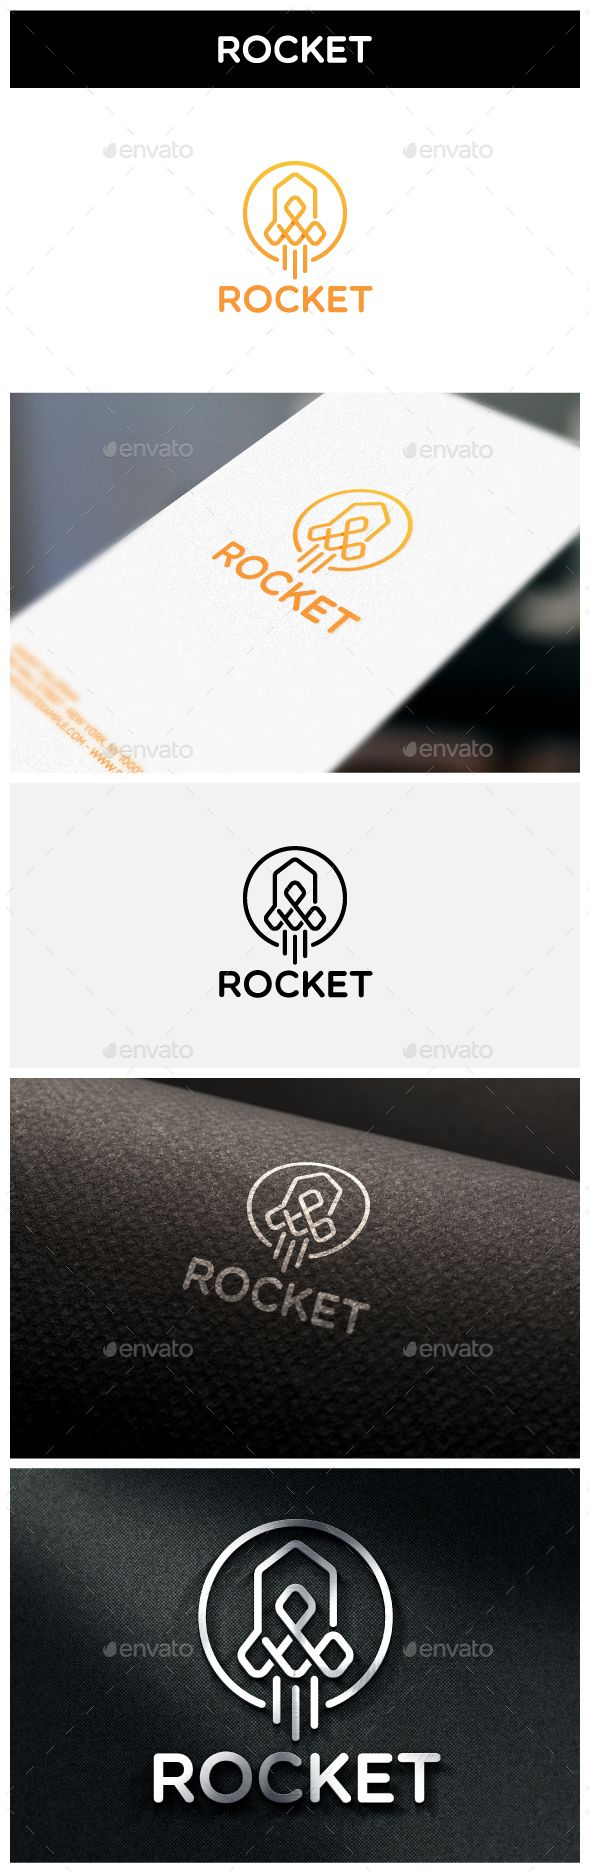 Rocket Logo — Vector EPS #design #pixel • Available here → https://graphicriver.net/item/rocket-logo/15333427?ref=pxcr